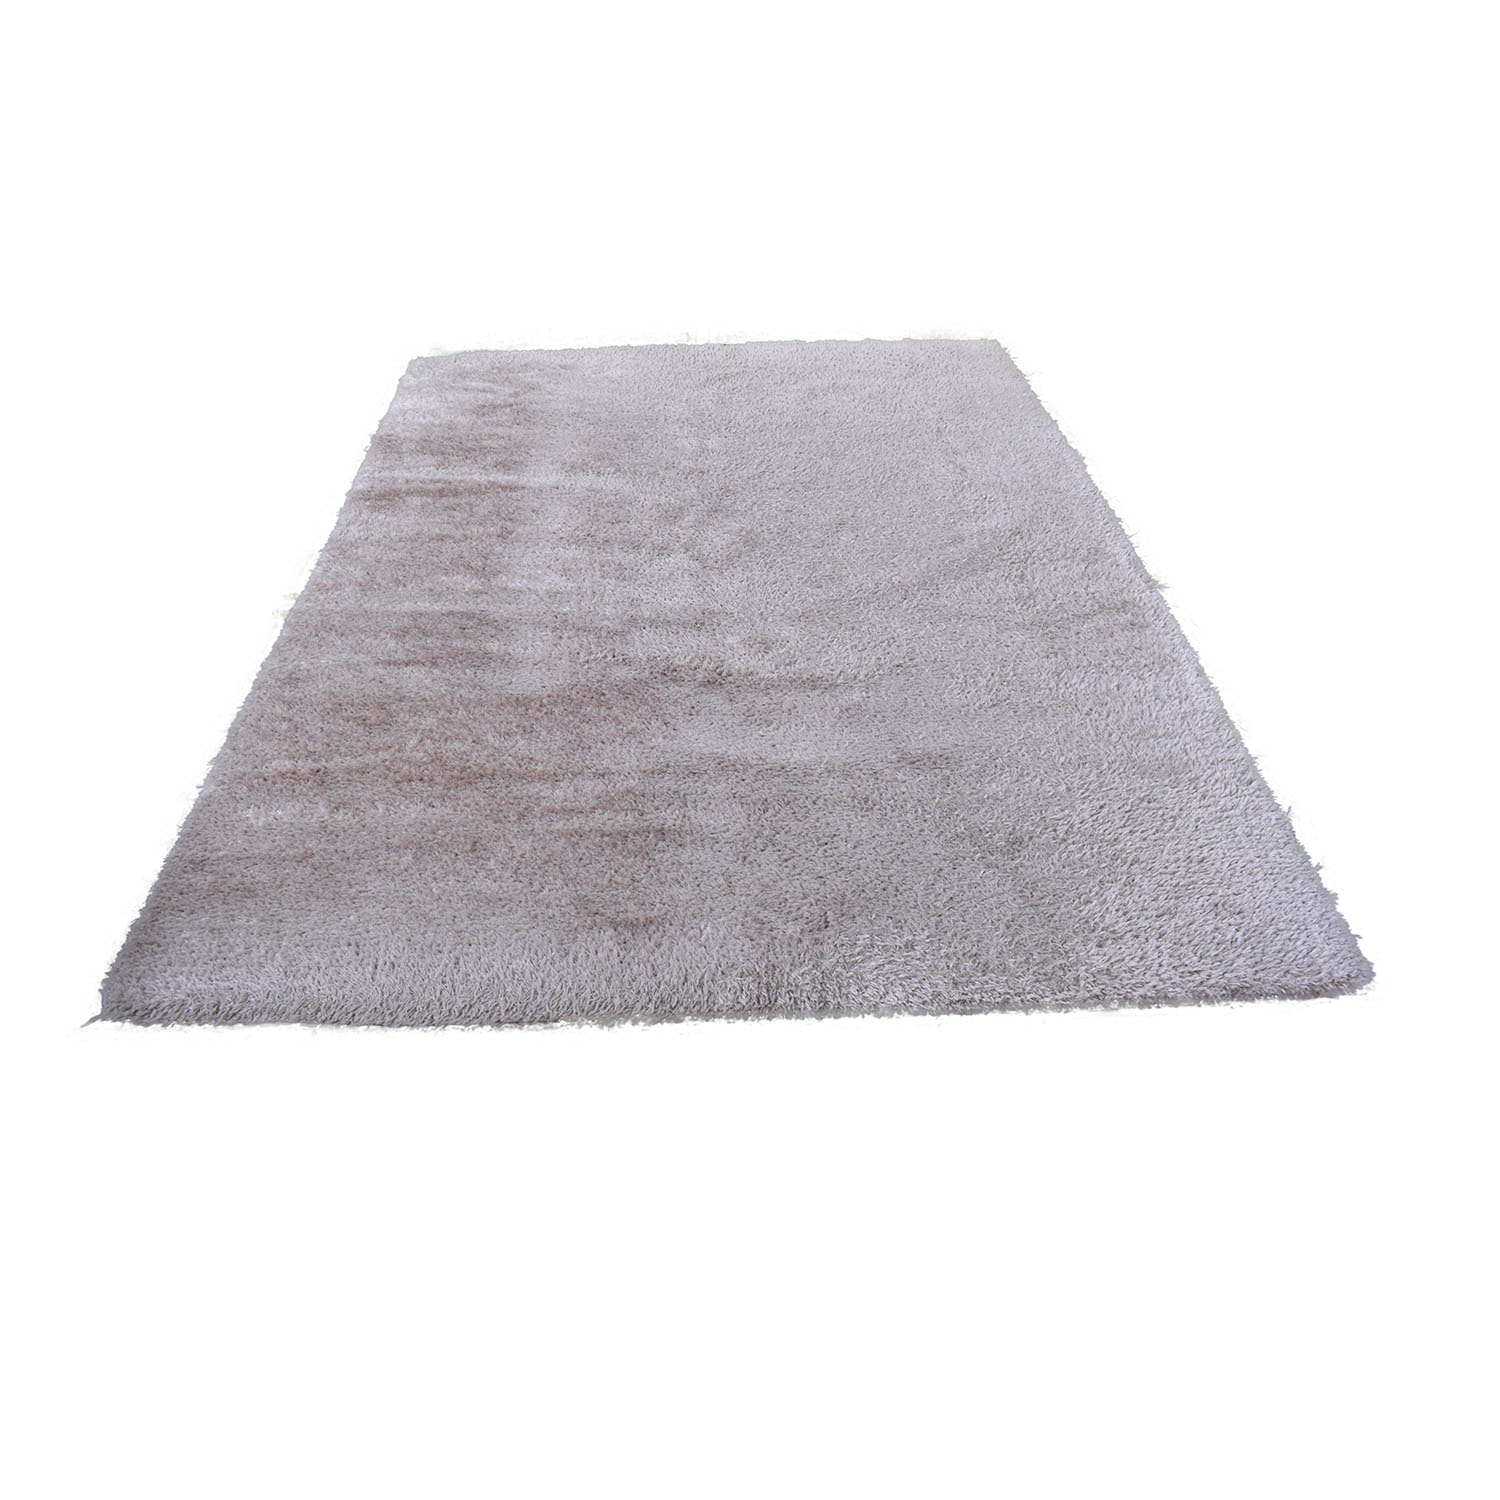 shop ABC Carpet & Home ABC Carpet & Home Stepevi Touch Me Short Pile Rug online